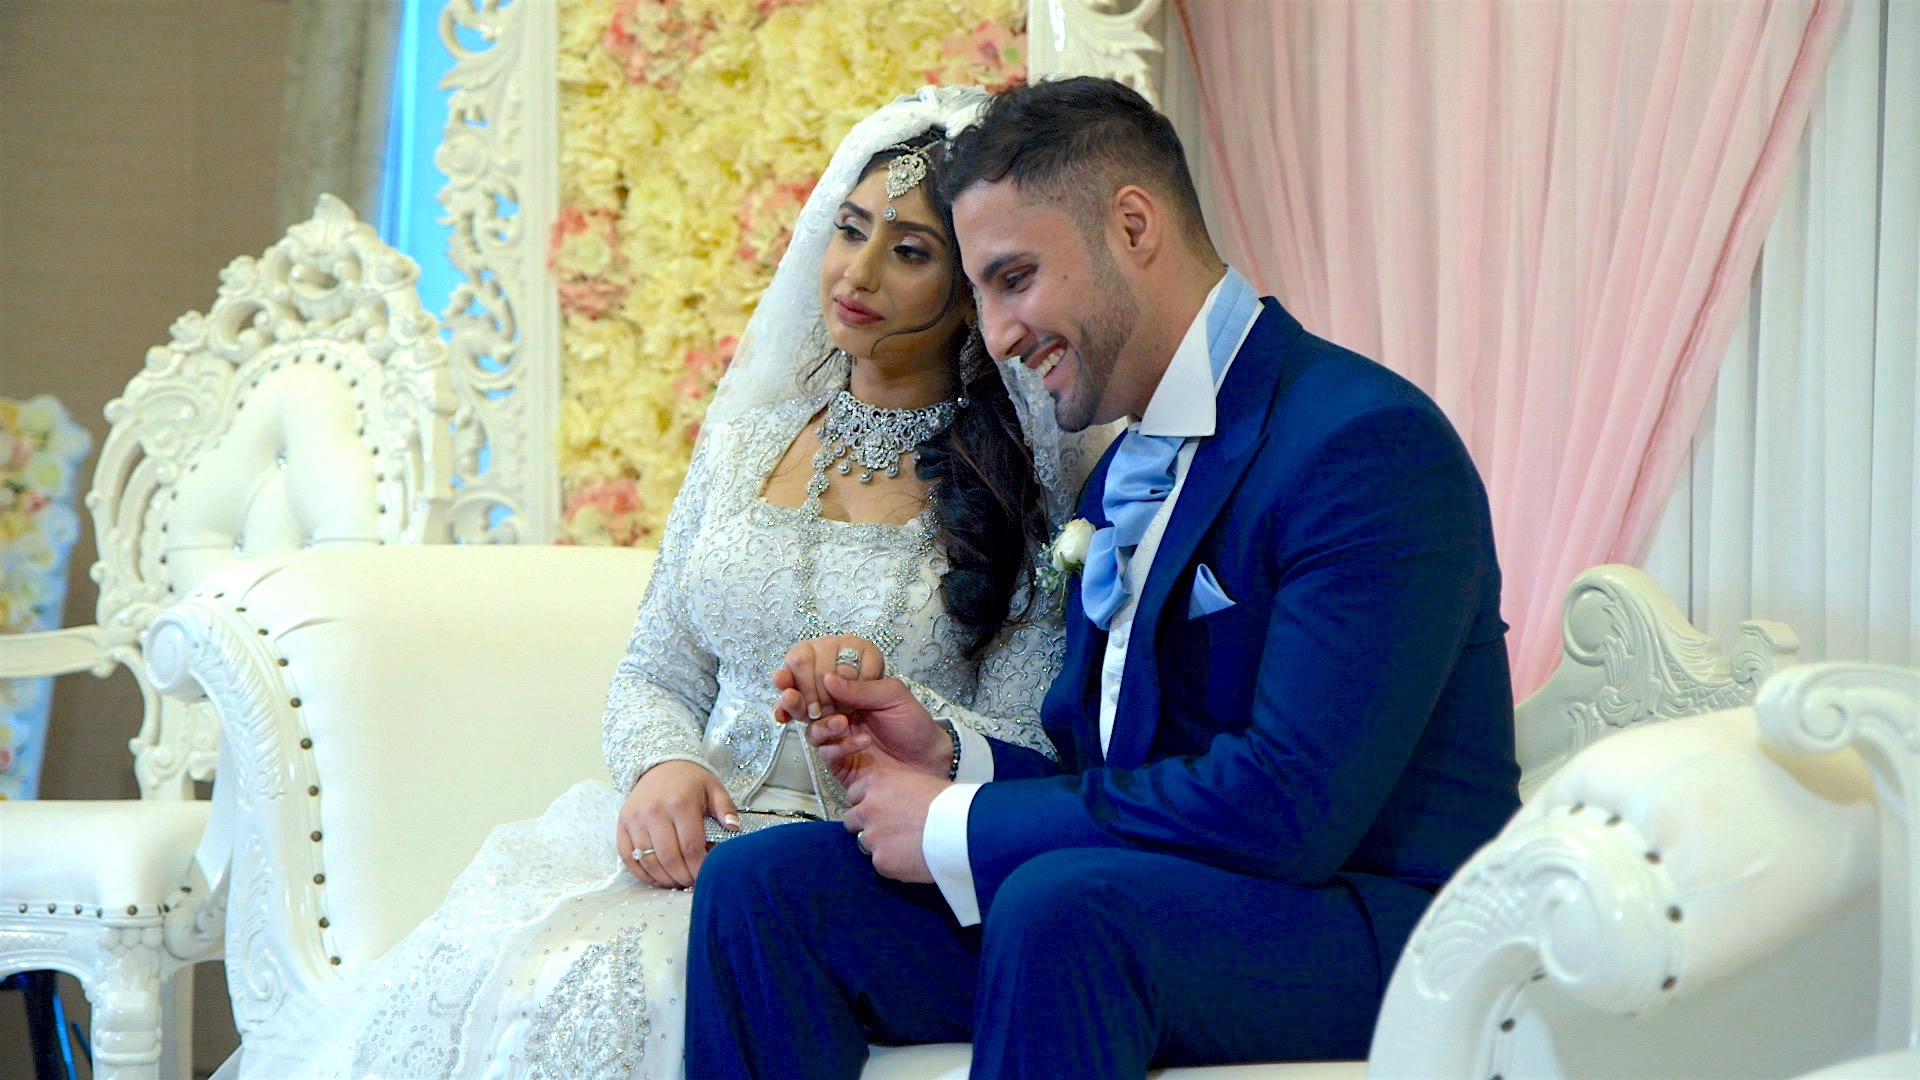 Meet Islamic Singles to Date in Your Area